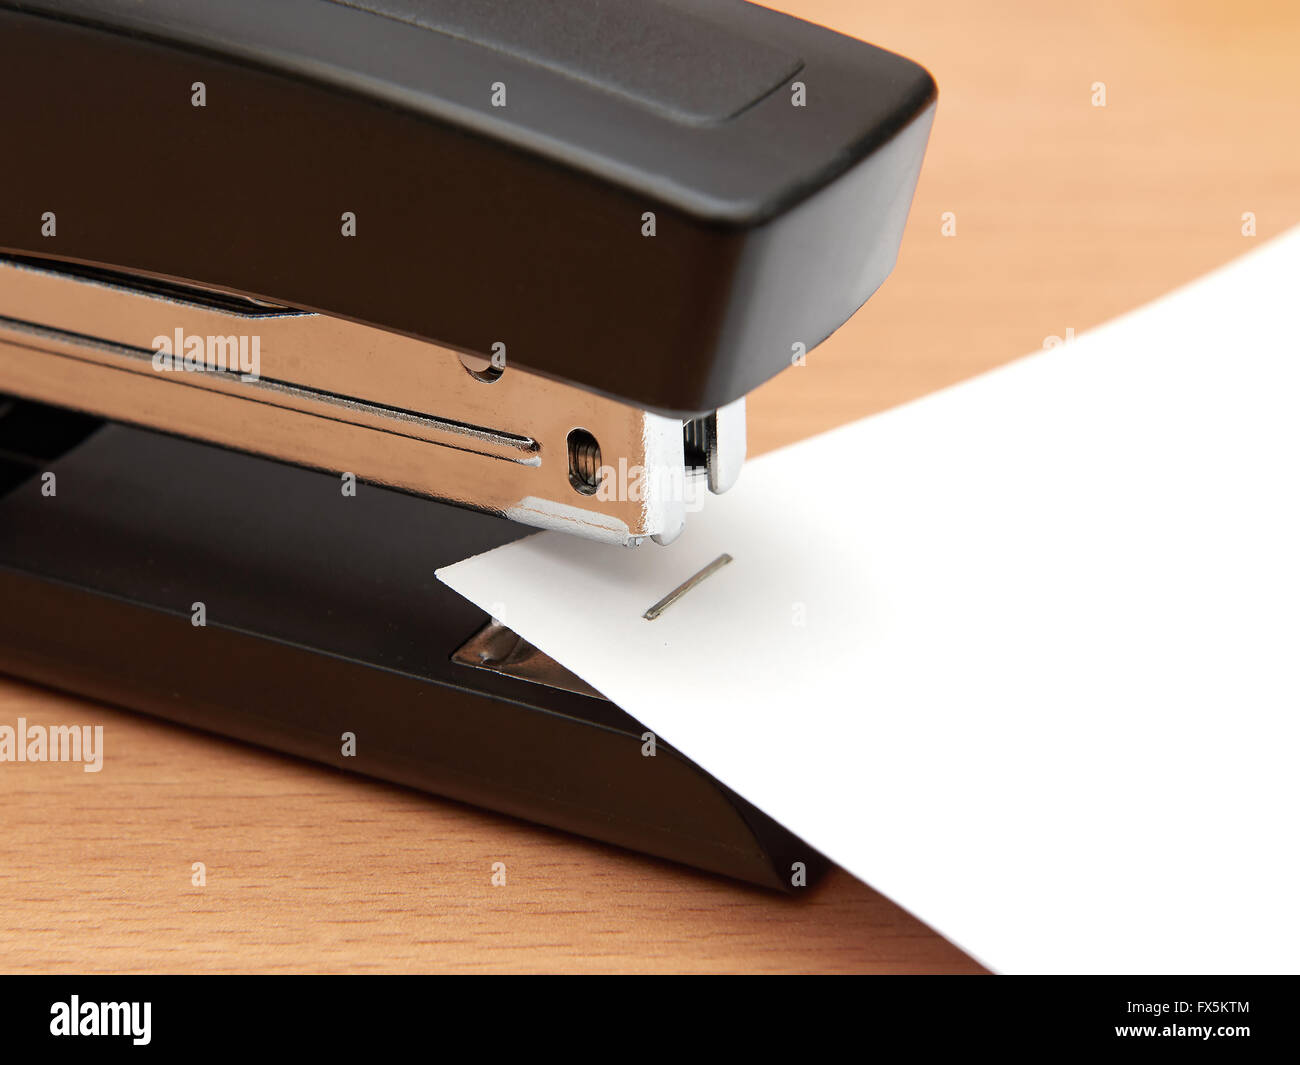 Closeup of a modern office stapler joining paper sheets - Stock Image